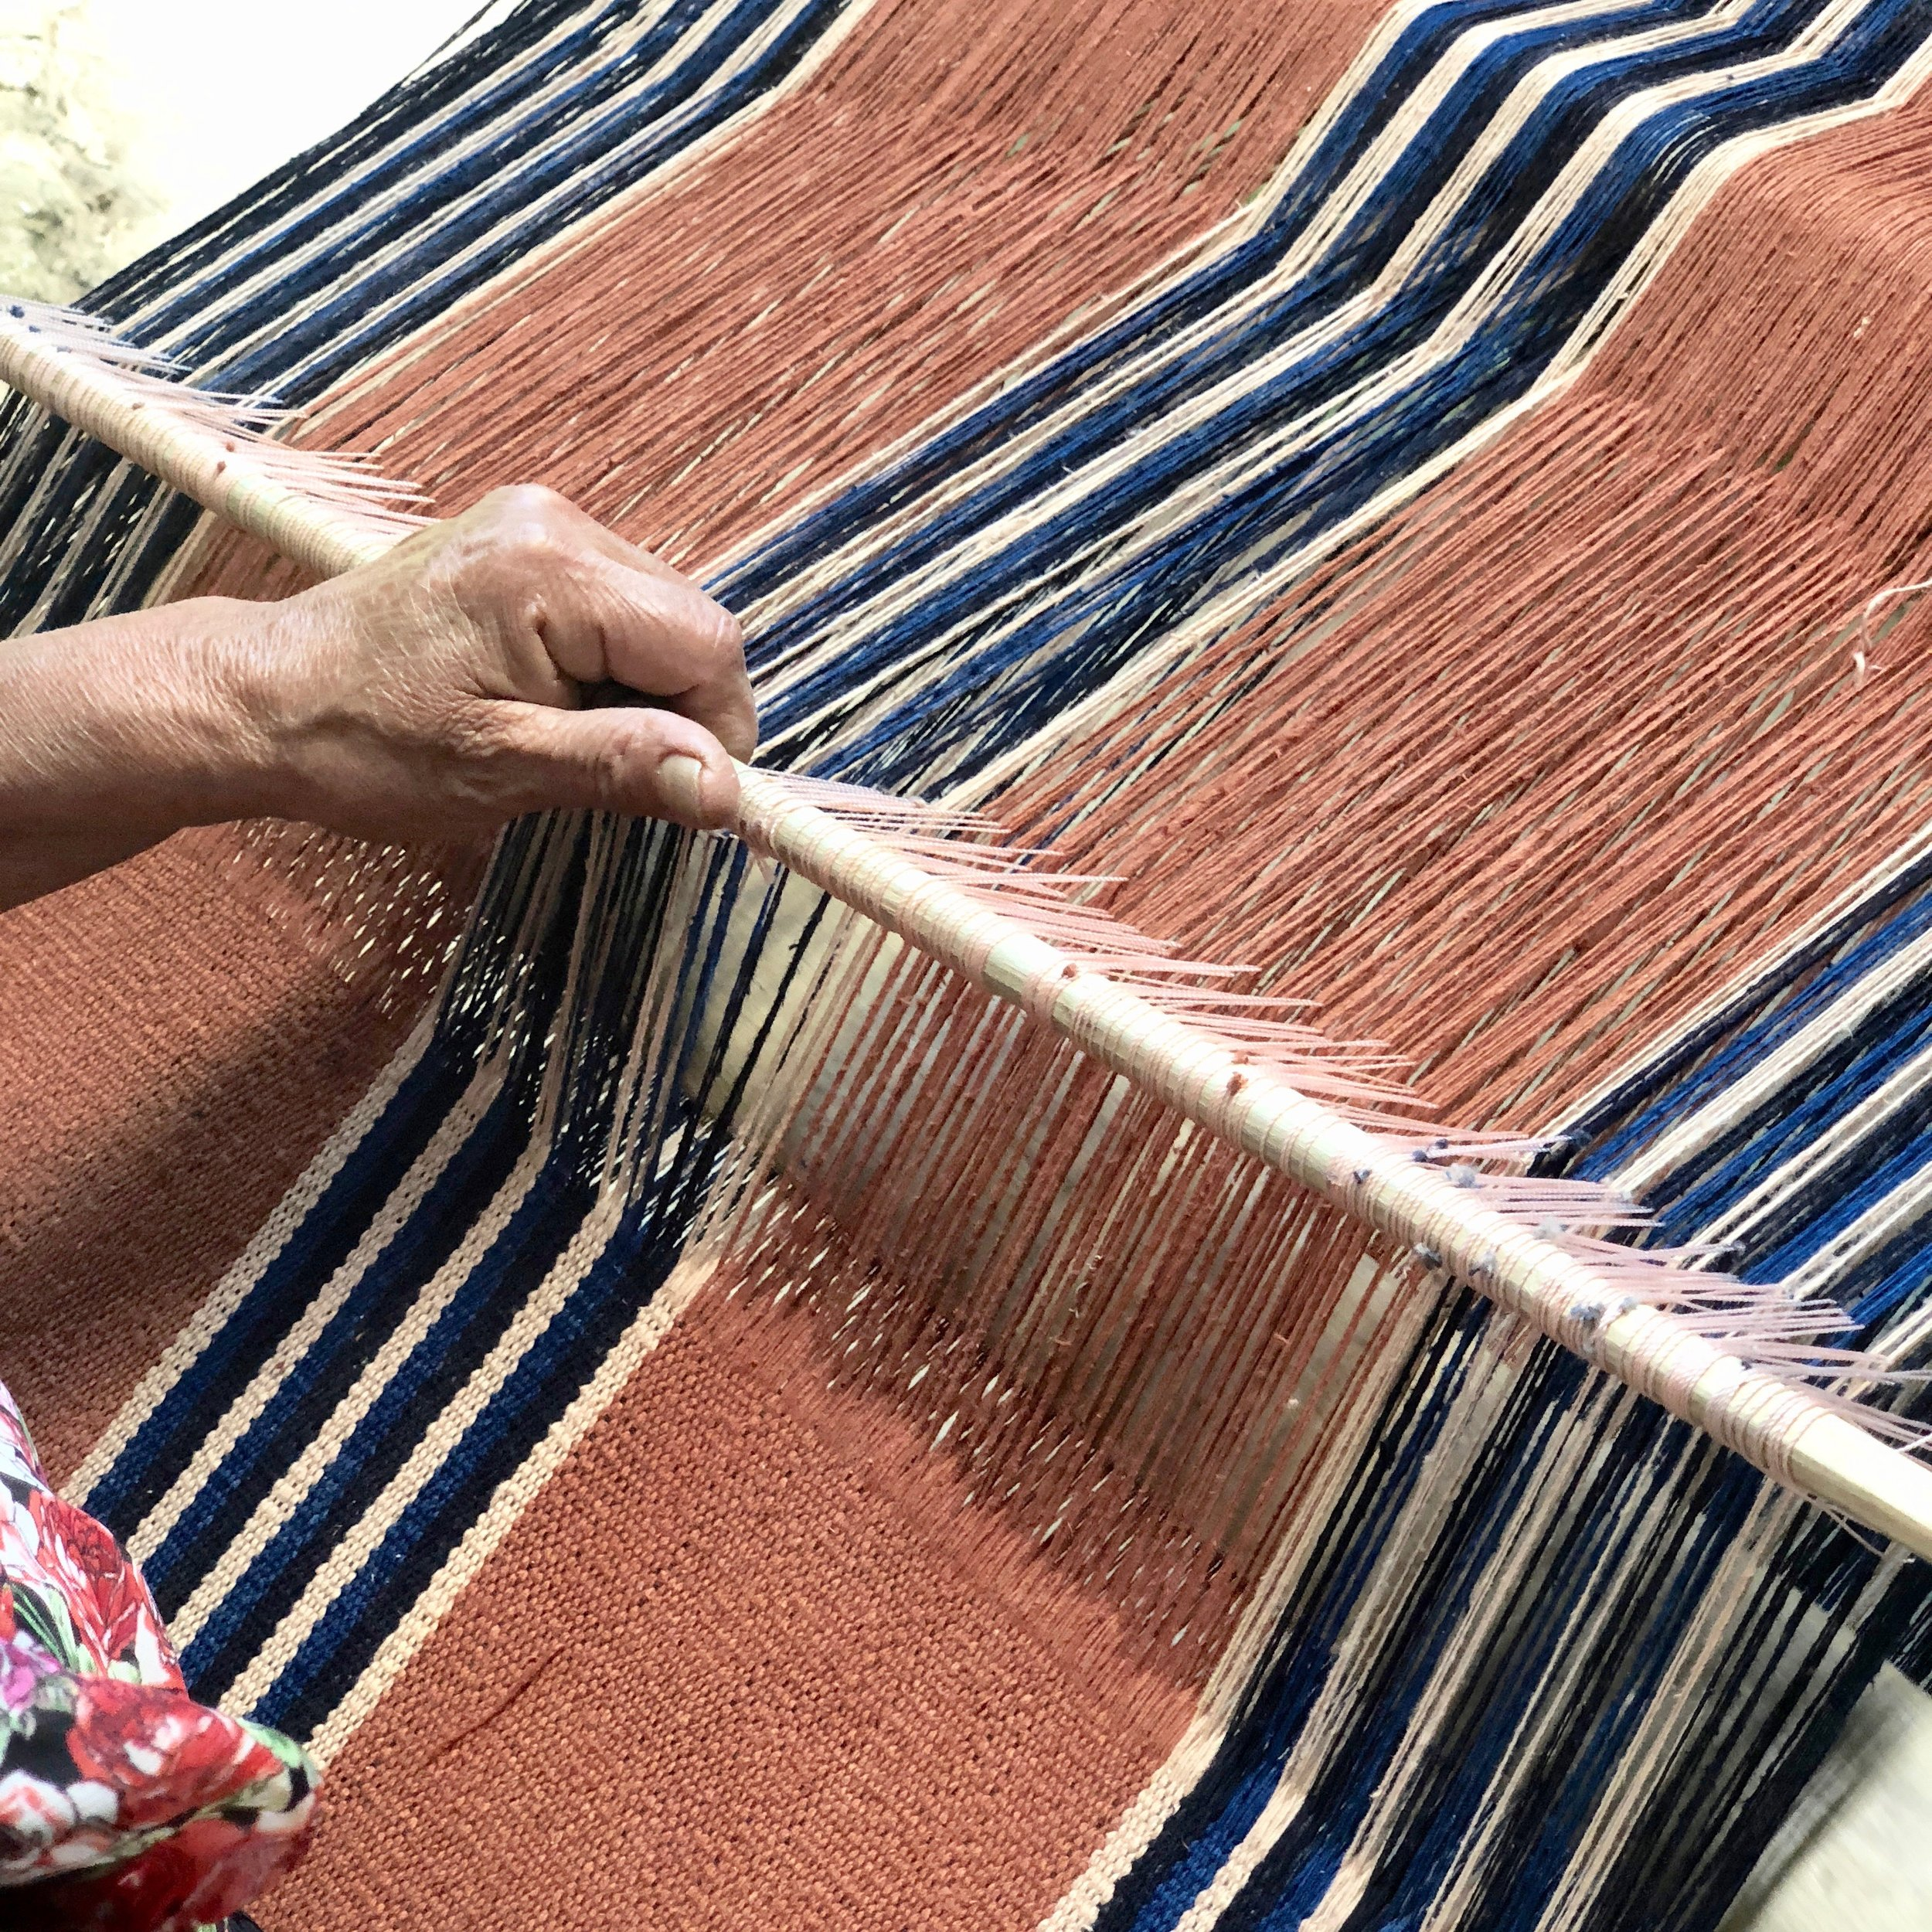 Visit our artisans - Volcanoes and Textiles Tour